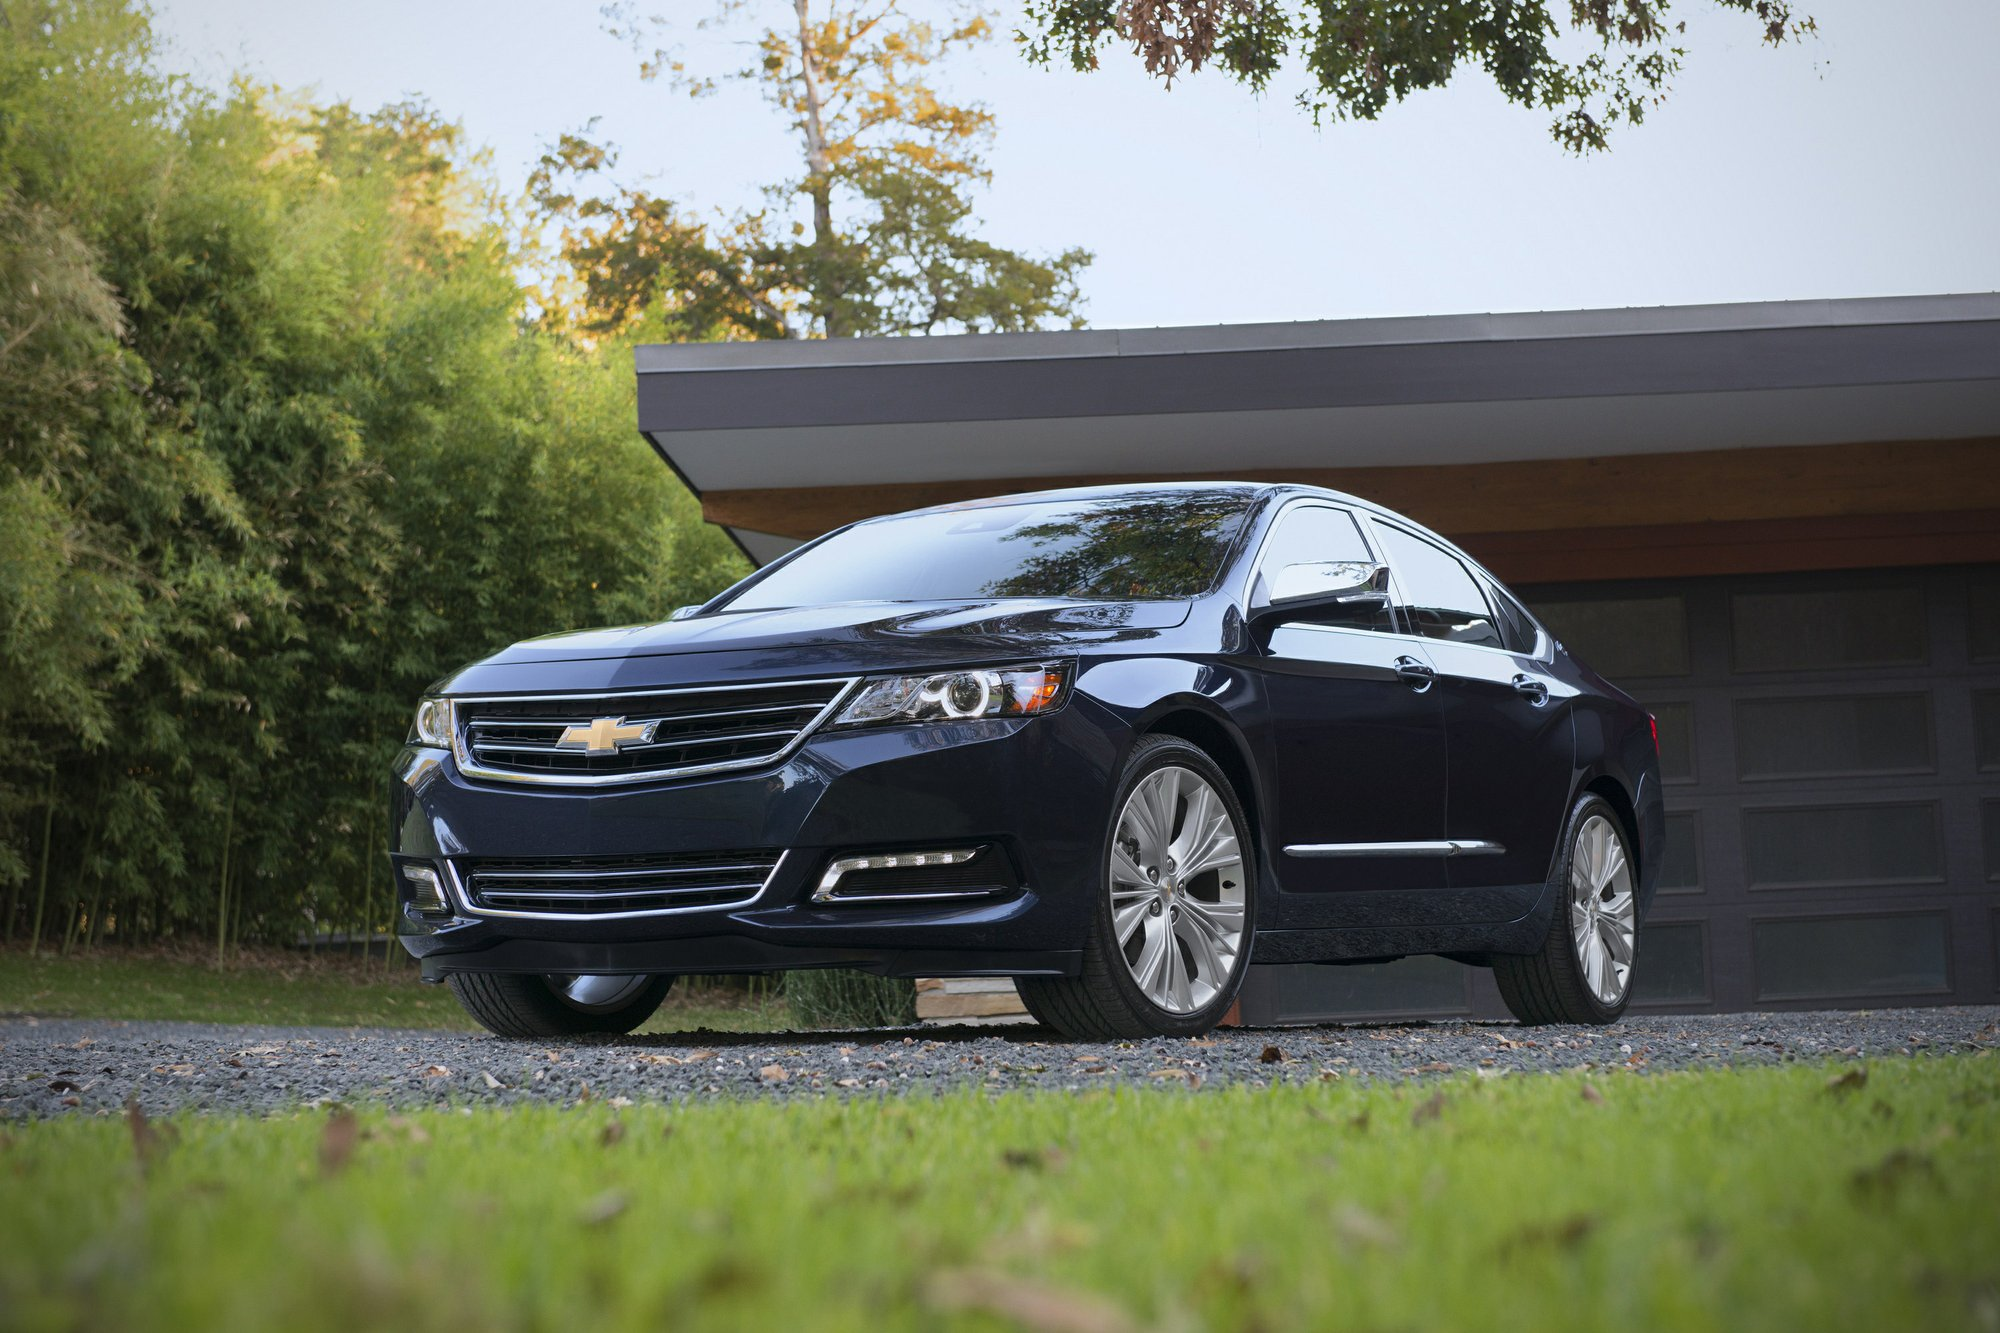 Edmunds: Discontinued cars offer value but should you buy?